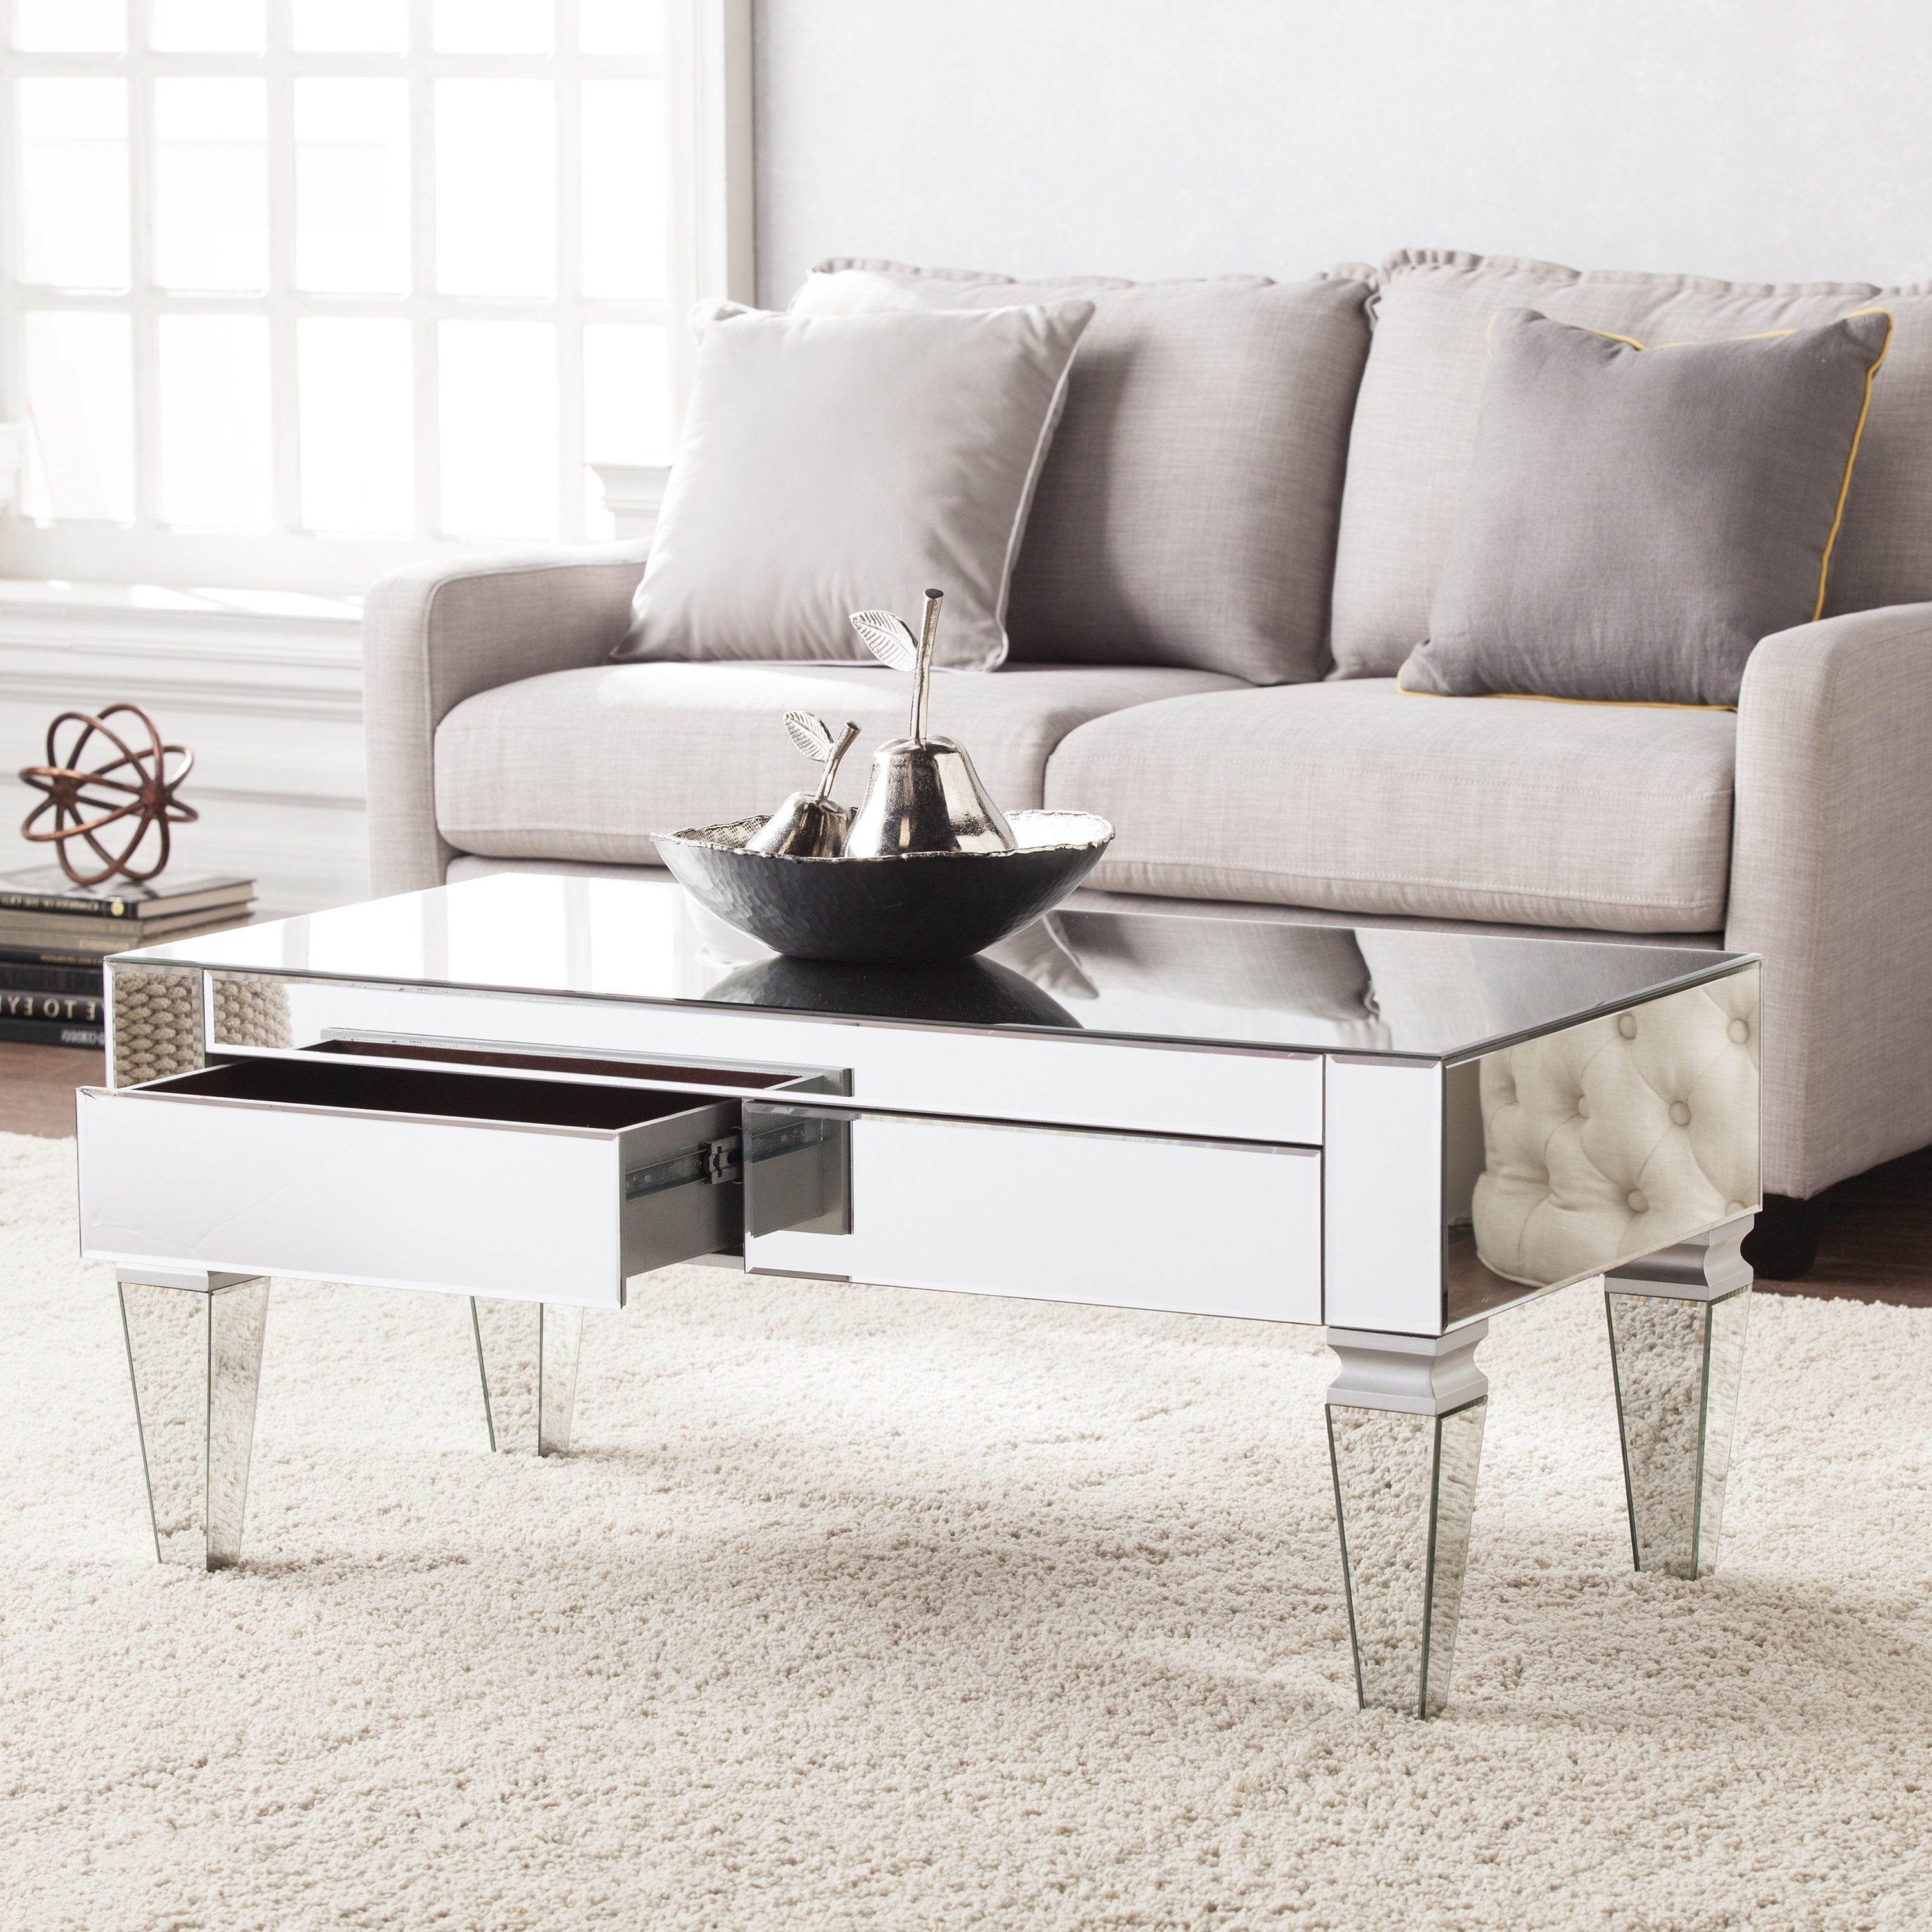 Silver Orchid Olivia Contemporary Mirrored Rectangular Cocktail Table With Regard To Most Up To Date Silver Orchid Olivia Mirrored Coffee Cocktail Tables (View 6 of 20)